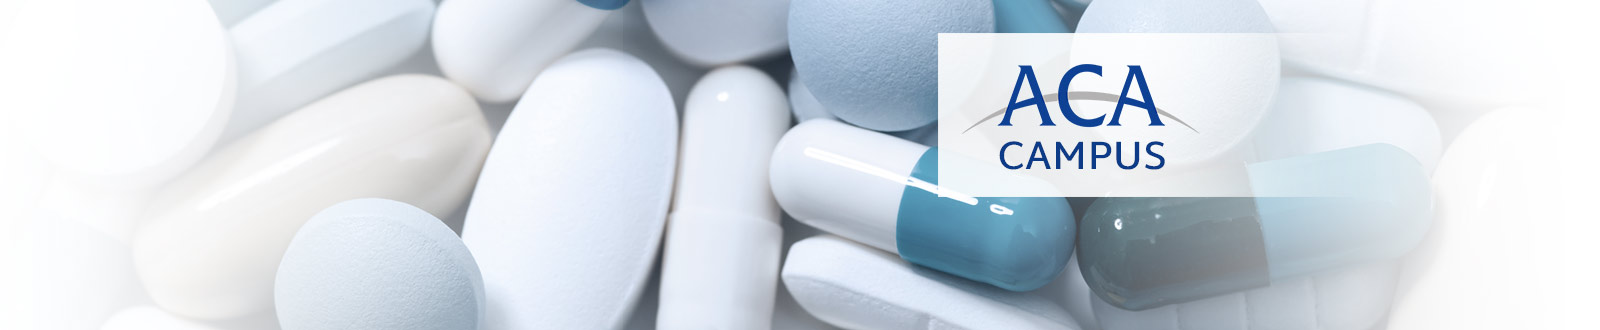 ACA-Campus-Medication-header